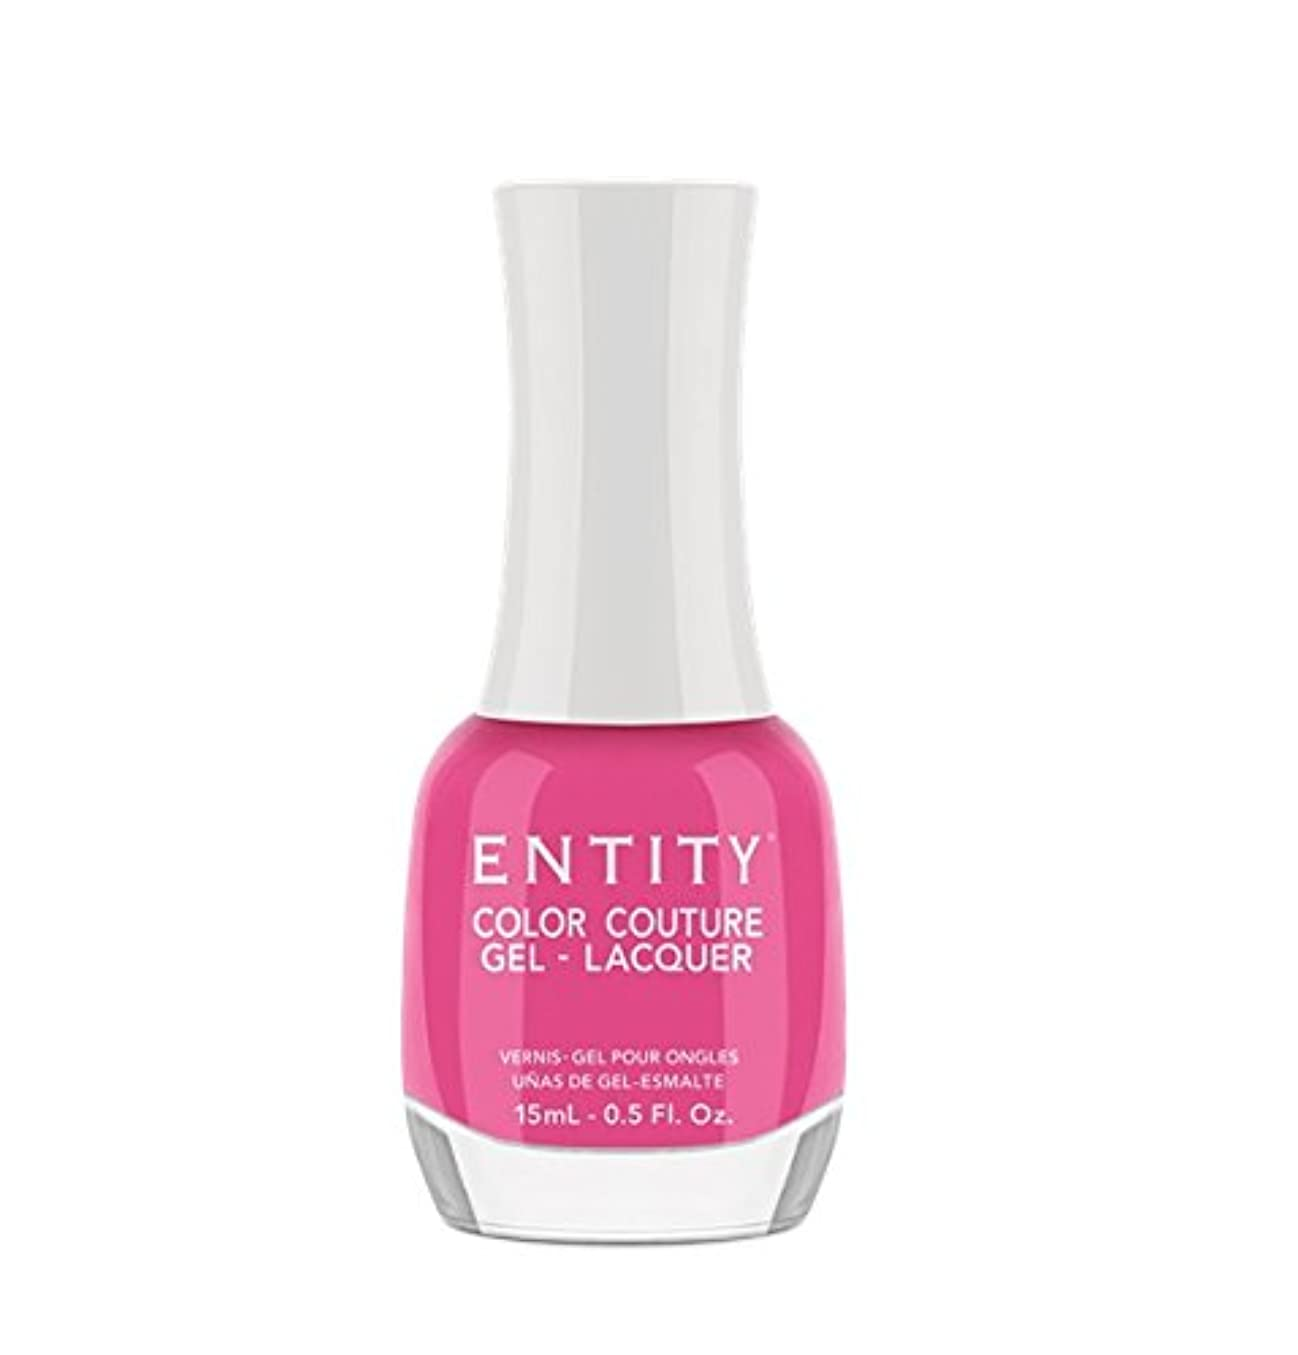 パースブラックボロウパイント壁紙Entity Color Couture Gel-Lacquer - The Bright Stuff - 15 ml/0.5 oz